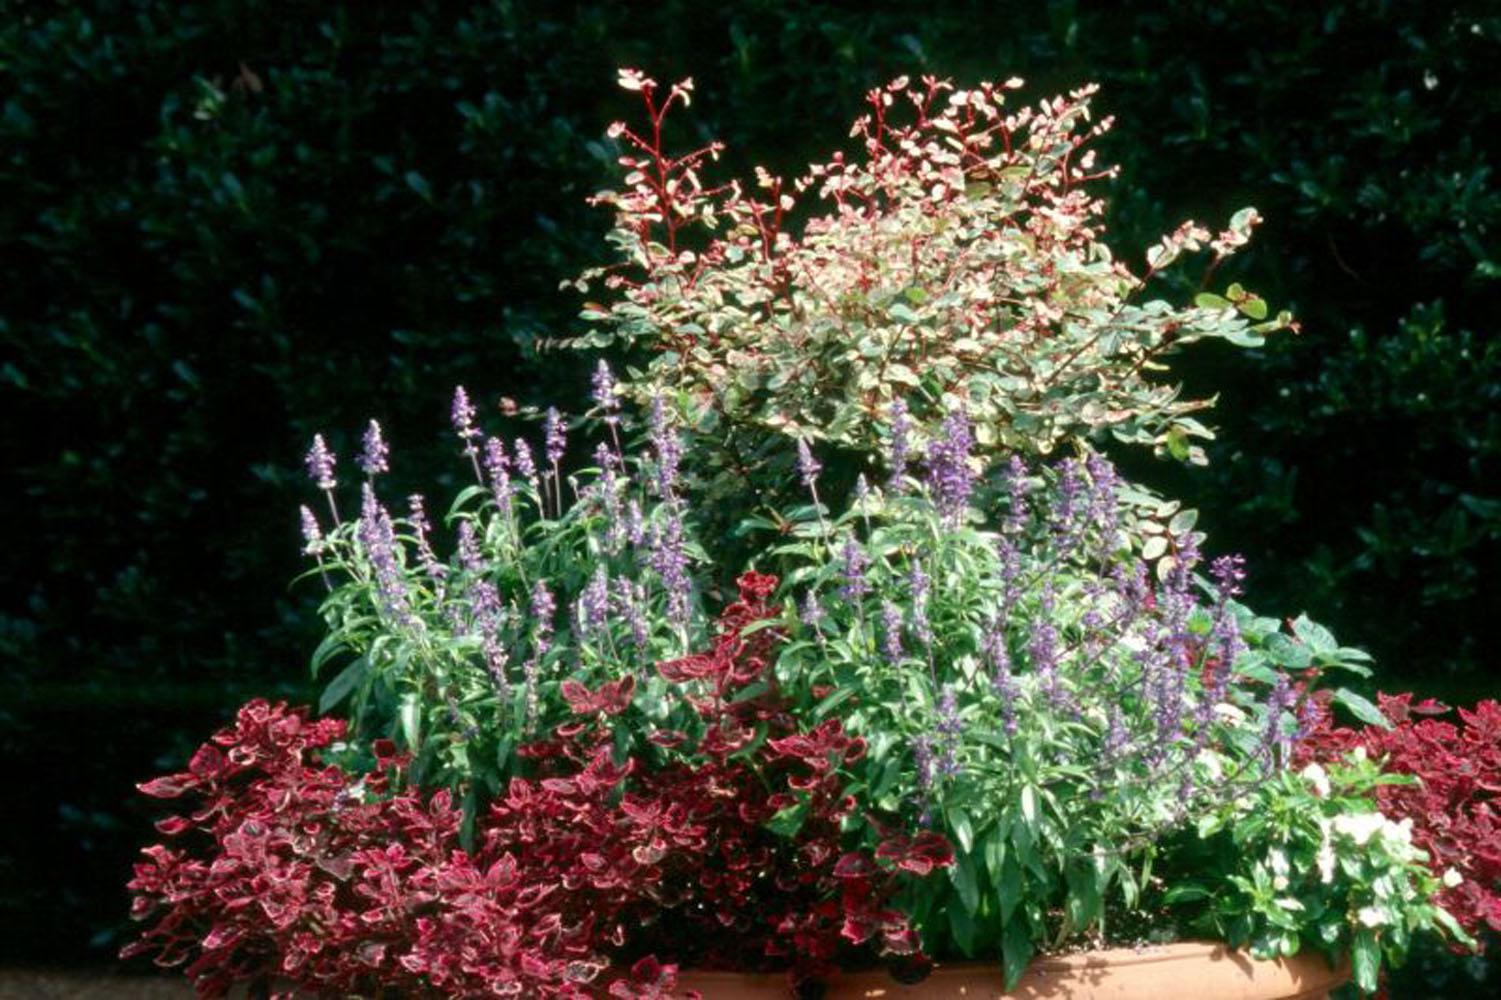 The snow bush is sought after for its colorful foliage and unique habit rather than its bloom. It produces slender, burgundy-colored zigzagging stems with leaves painted in green, cream and pink.